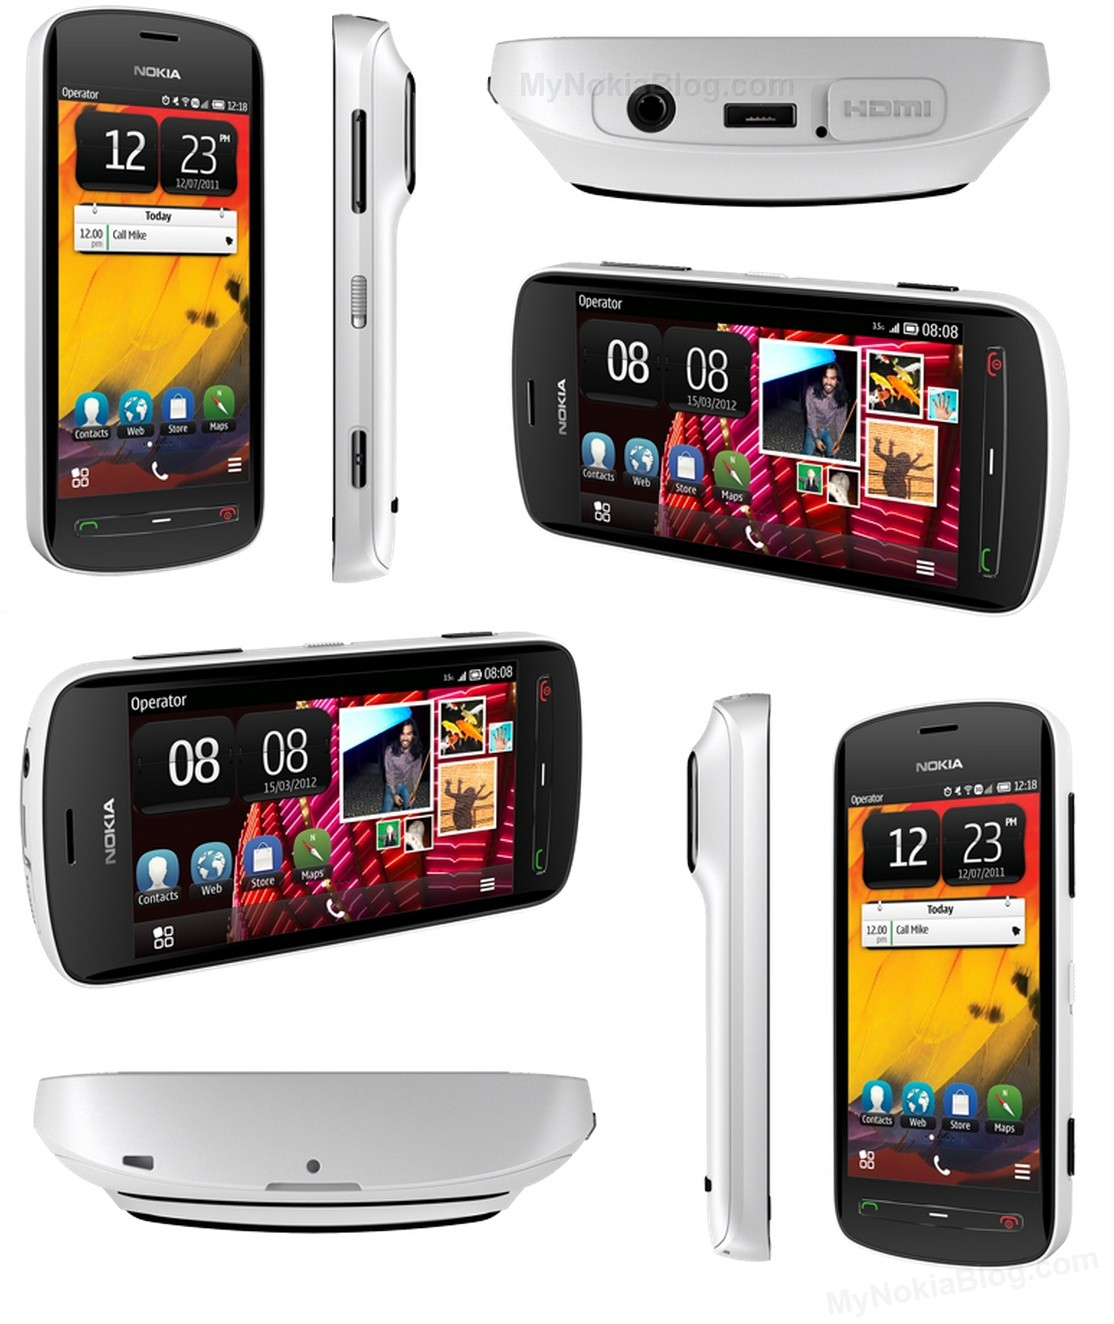 http://mynokiablog.com/wp-content/uploads/2012/02/Nokia-808-PureView-Red-White-Black7.jpg